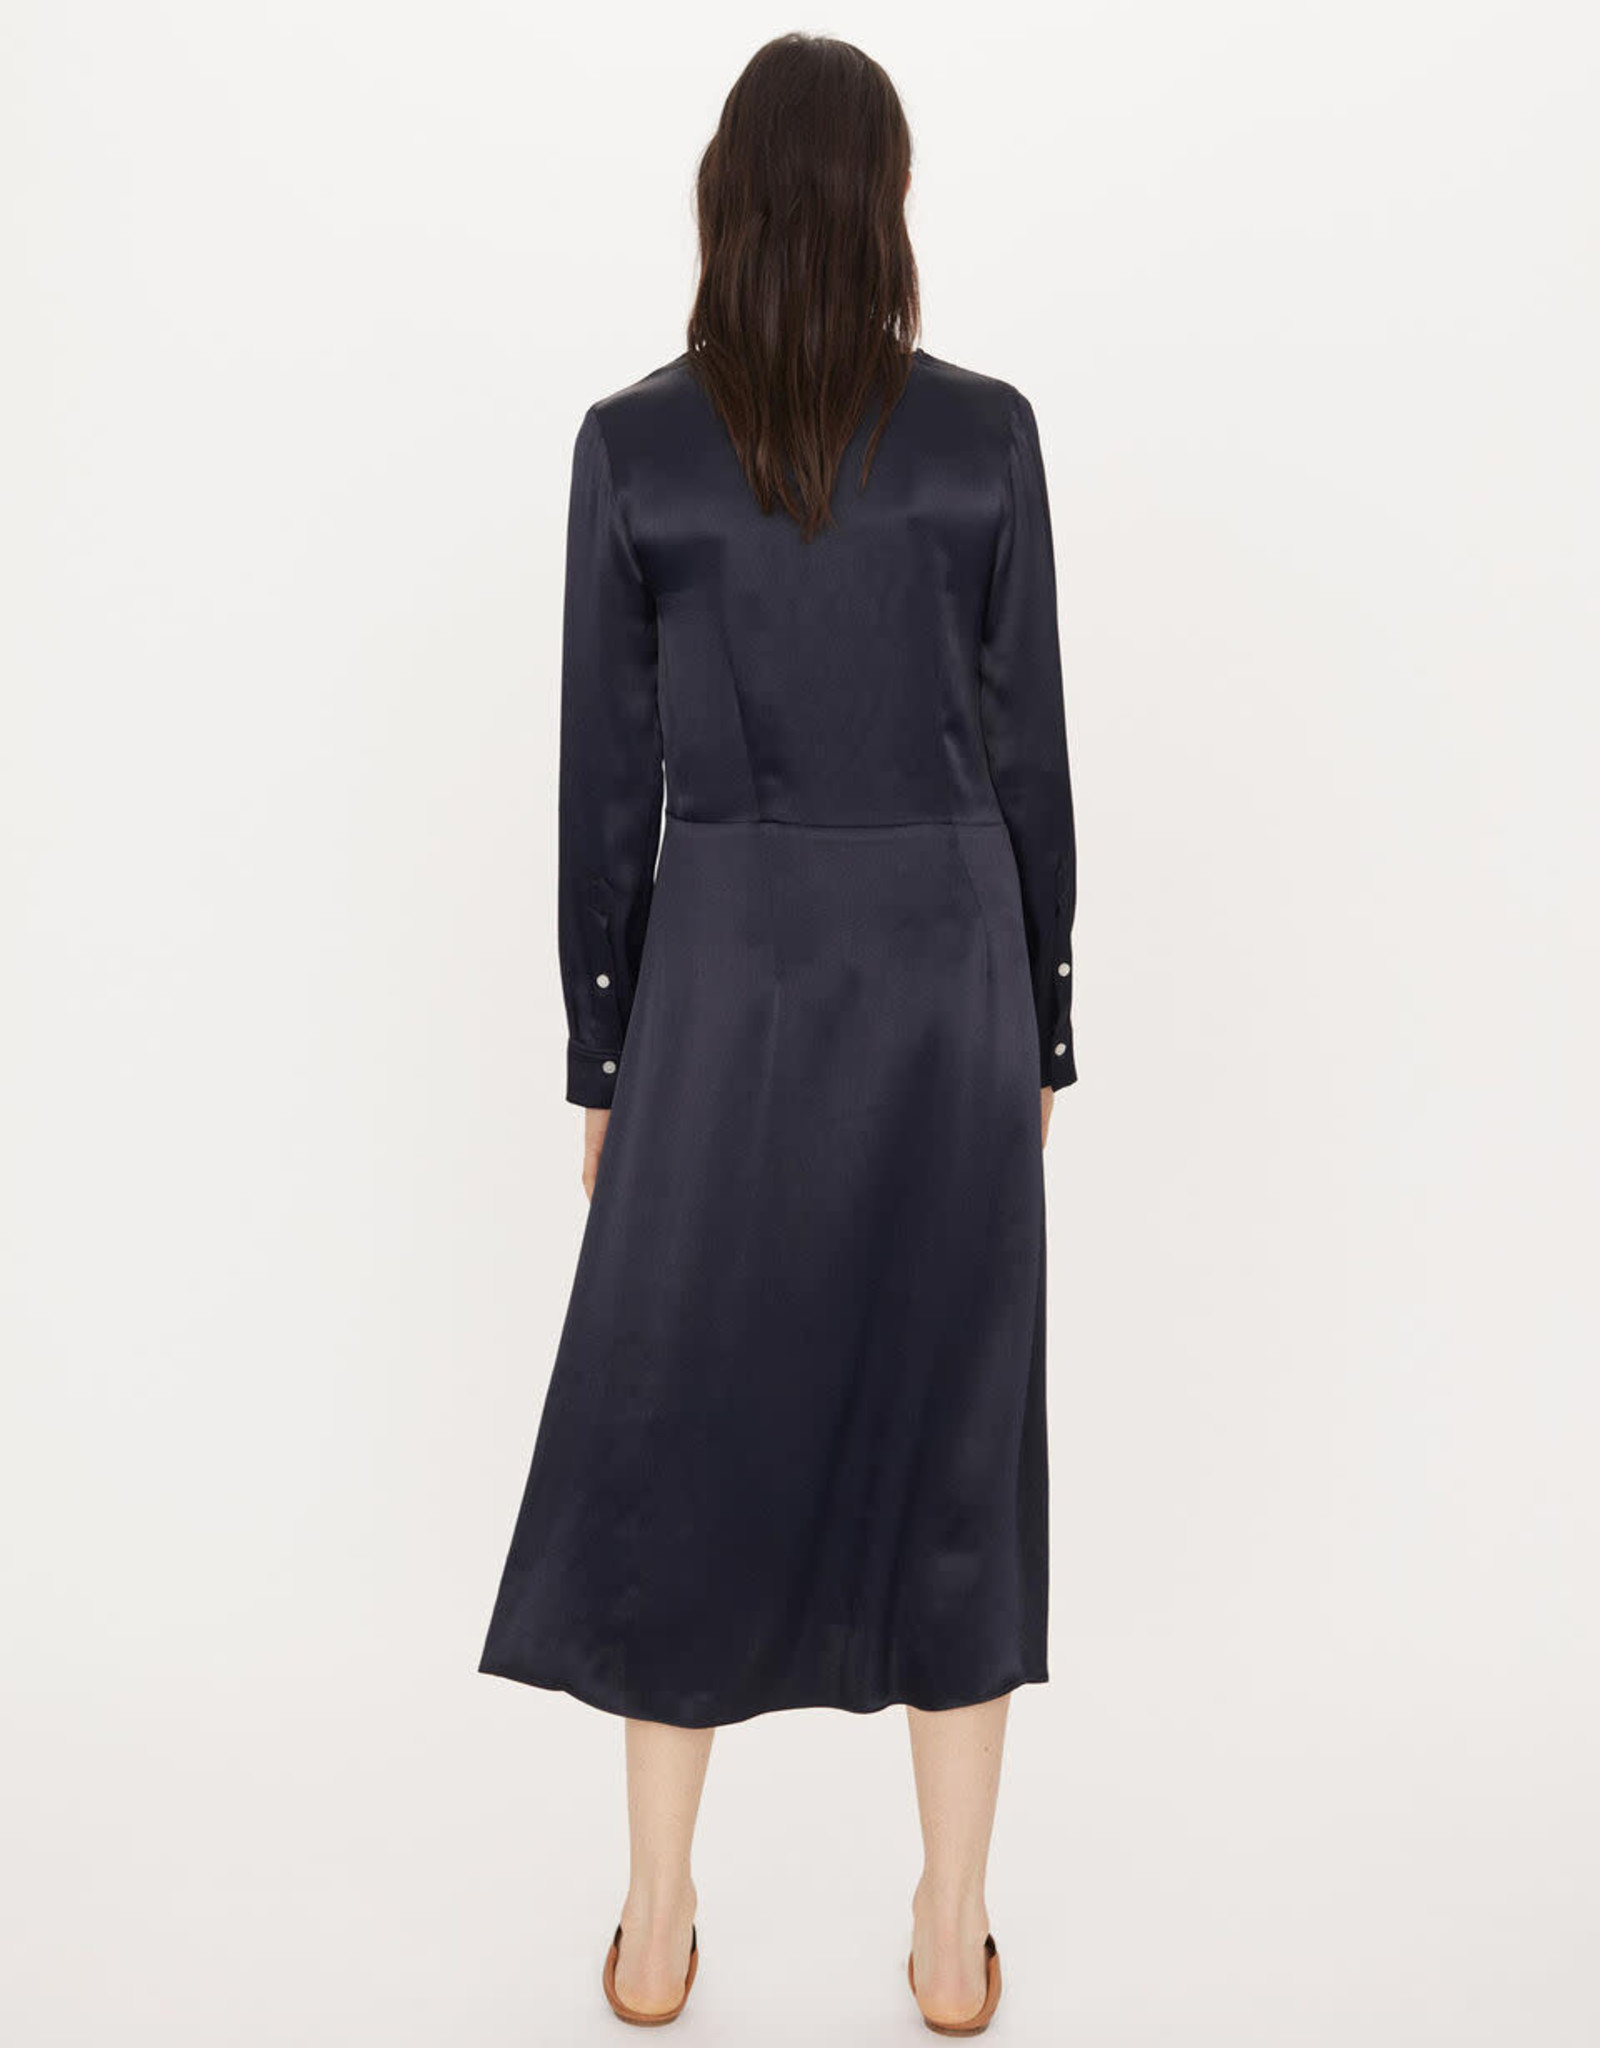 BY MALENE BIRGER The Micha Dress